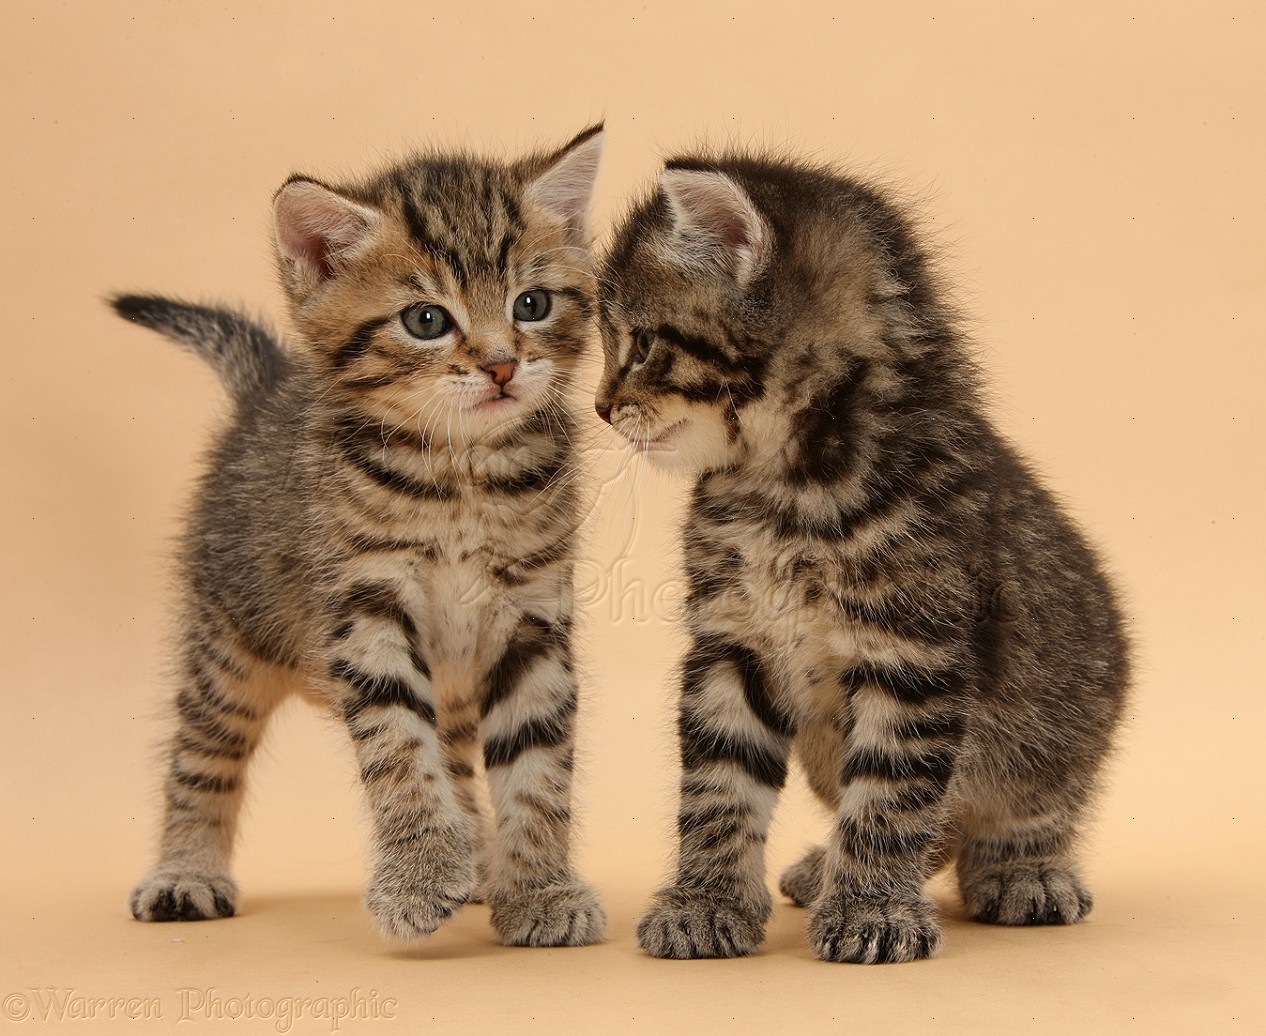 Two cute tabby kittens on beige background photo WP